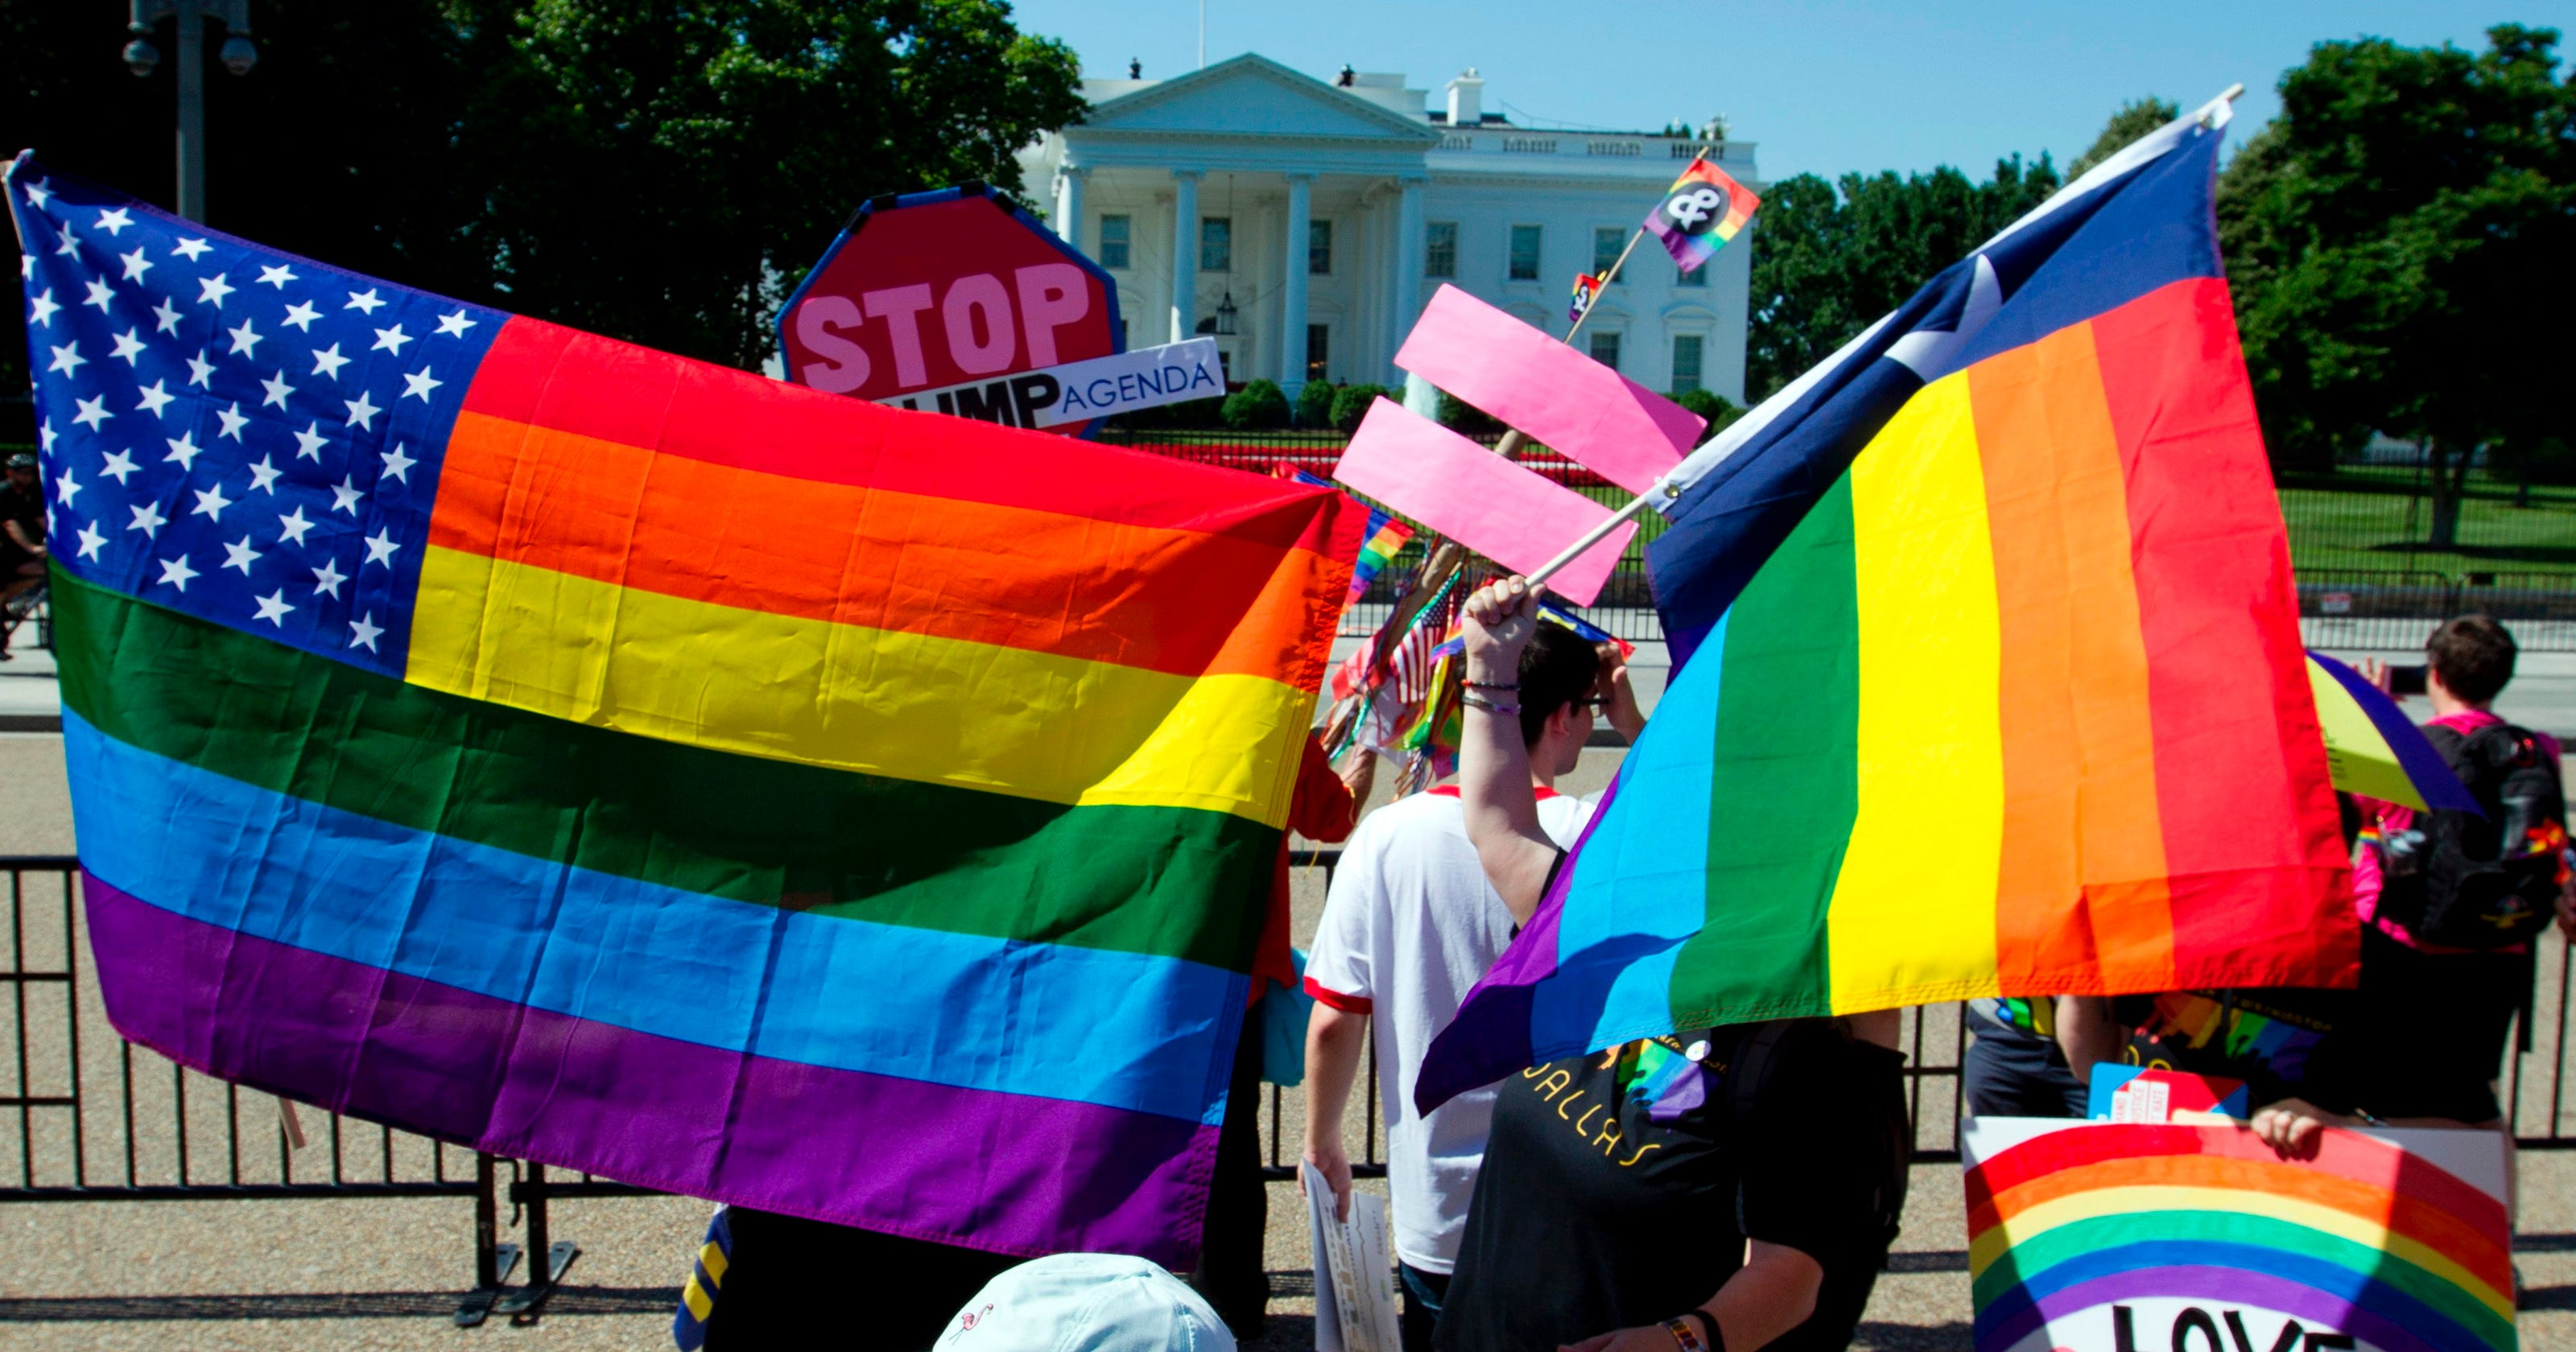 Americans less accepting of LGBT people in 2017